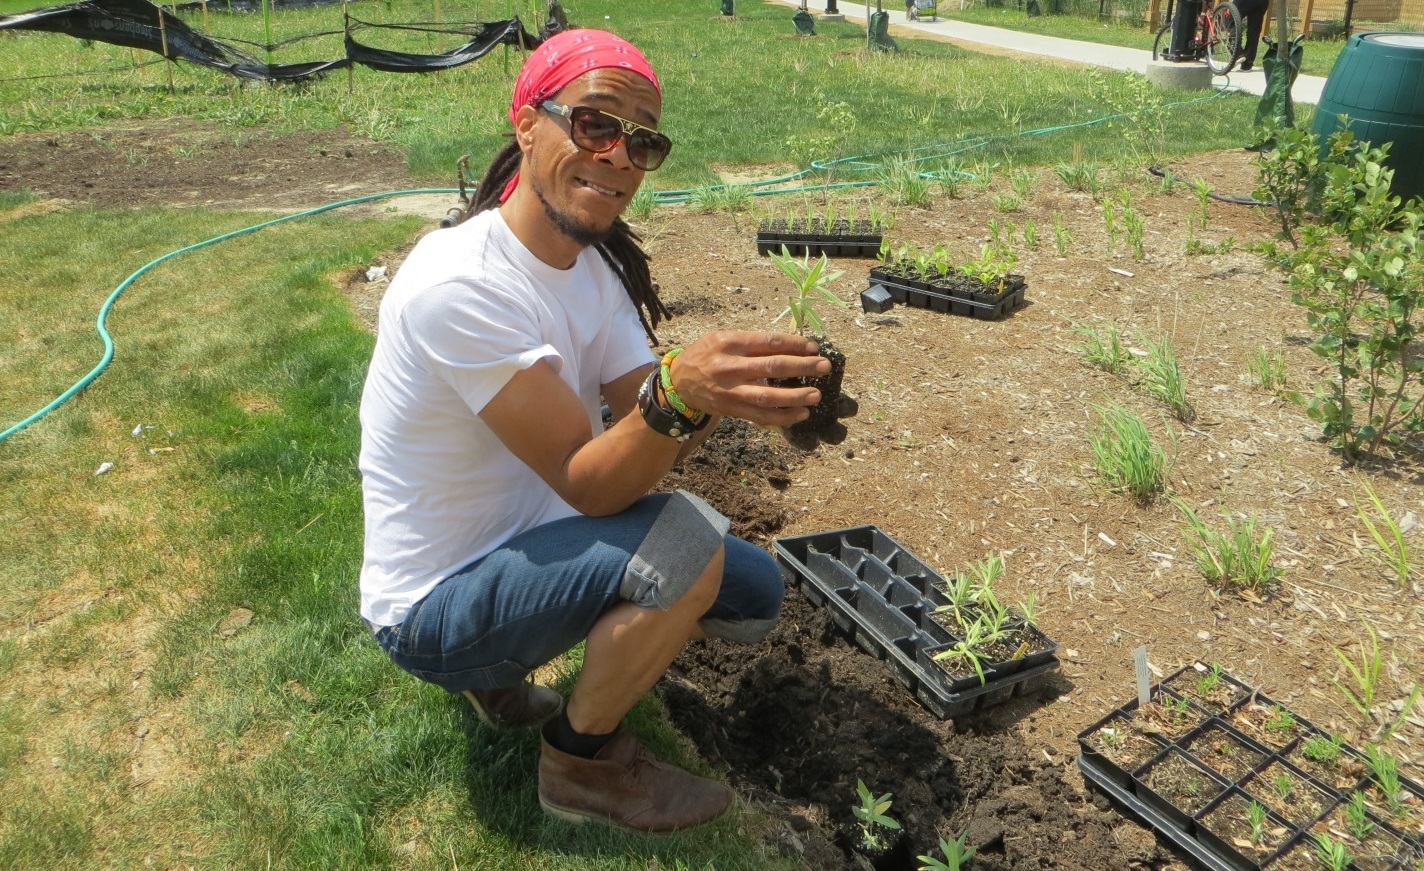 Black Creek SNAP resident takes part in horticulture training